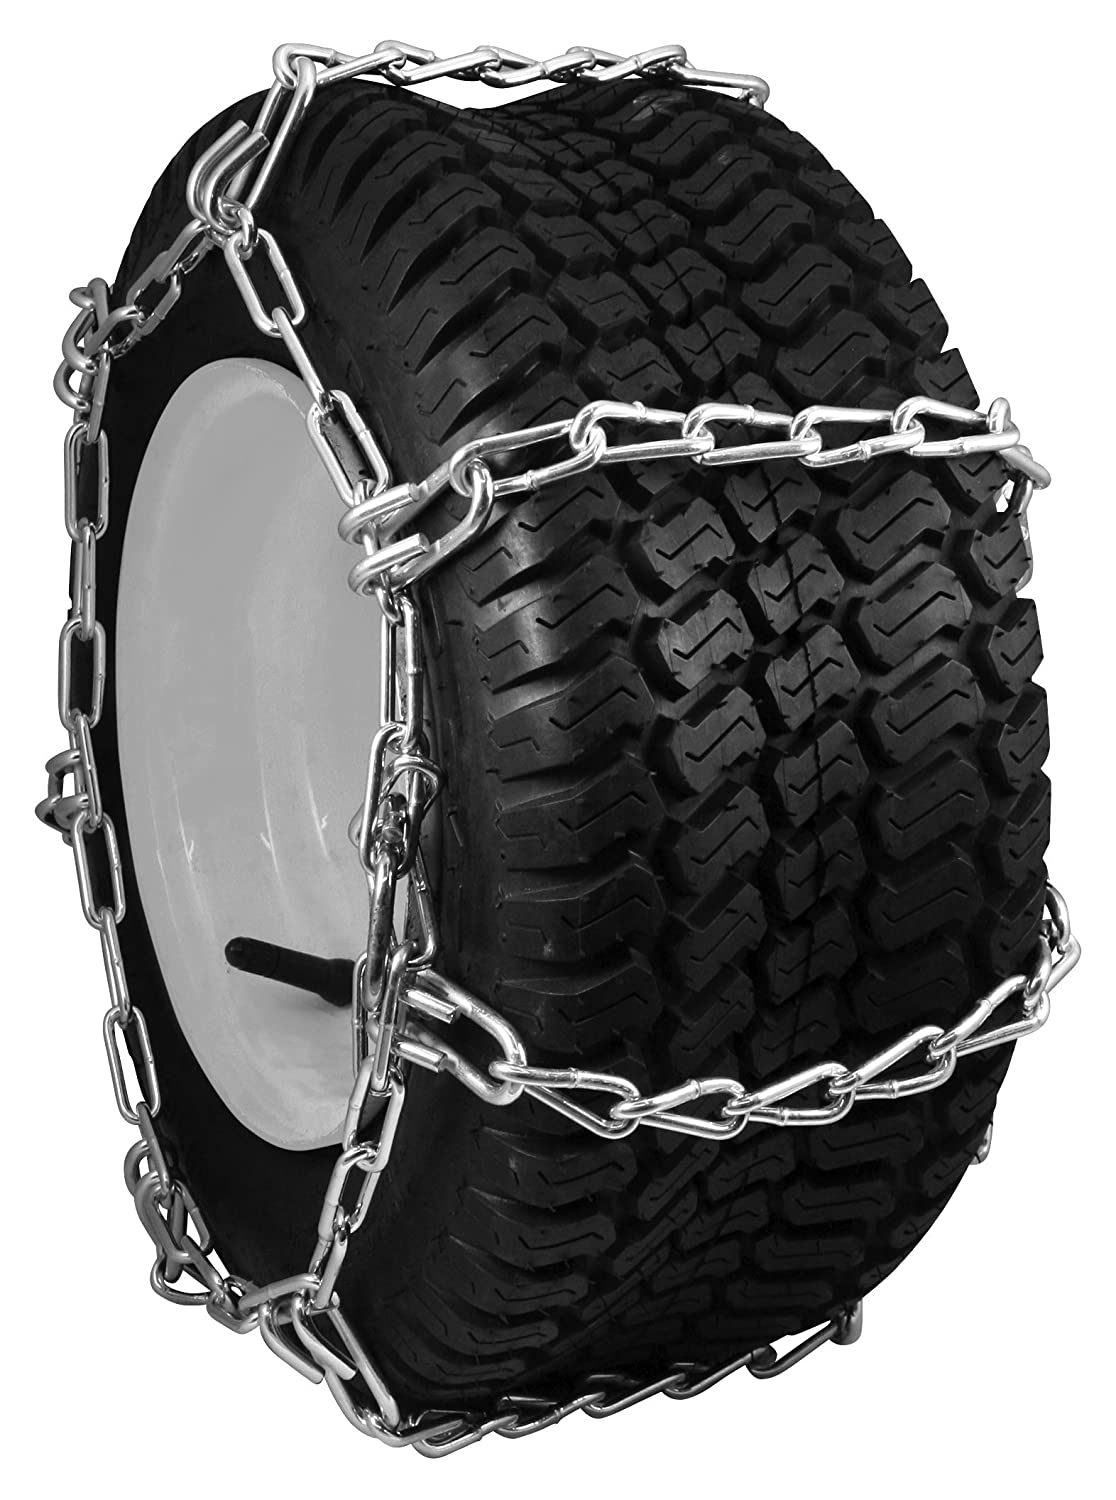 Security Chain Company 1062055 Max Trac Snow Blower Garden Tractor Tire Chain SCC